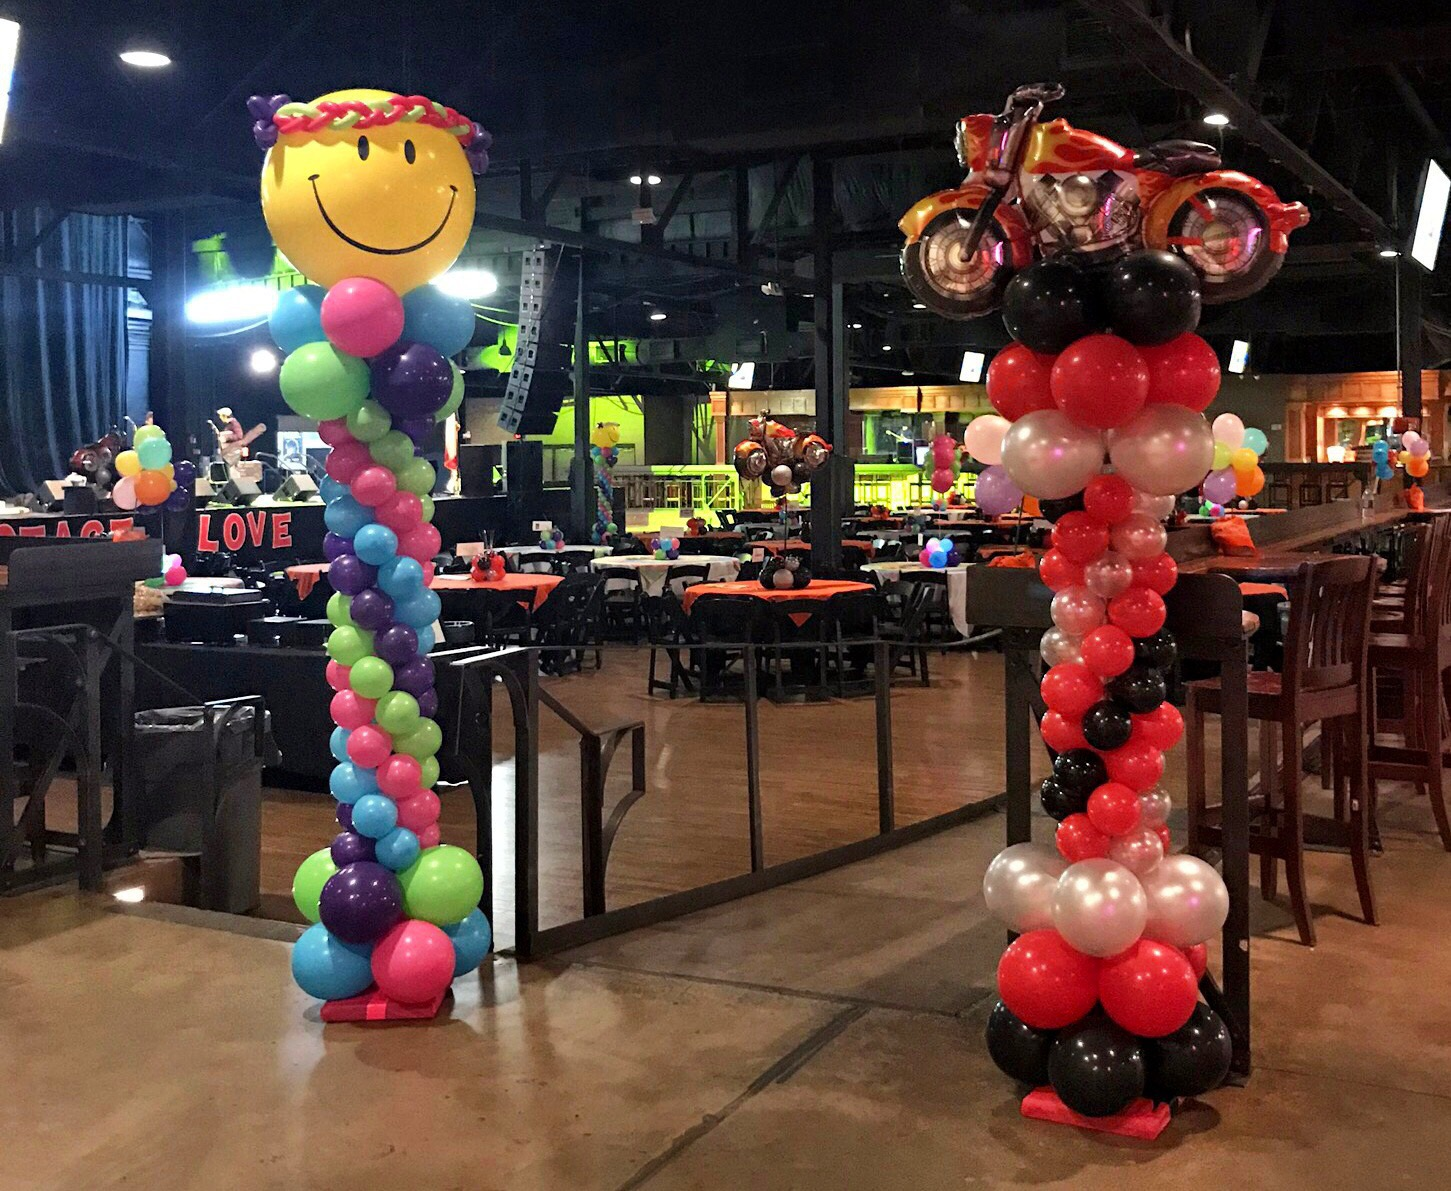 70's themed balloon columns